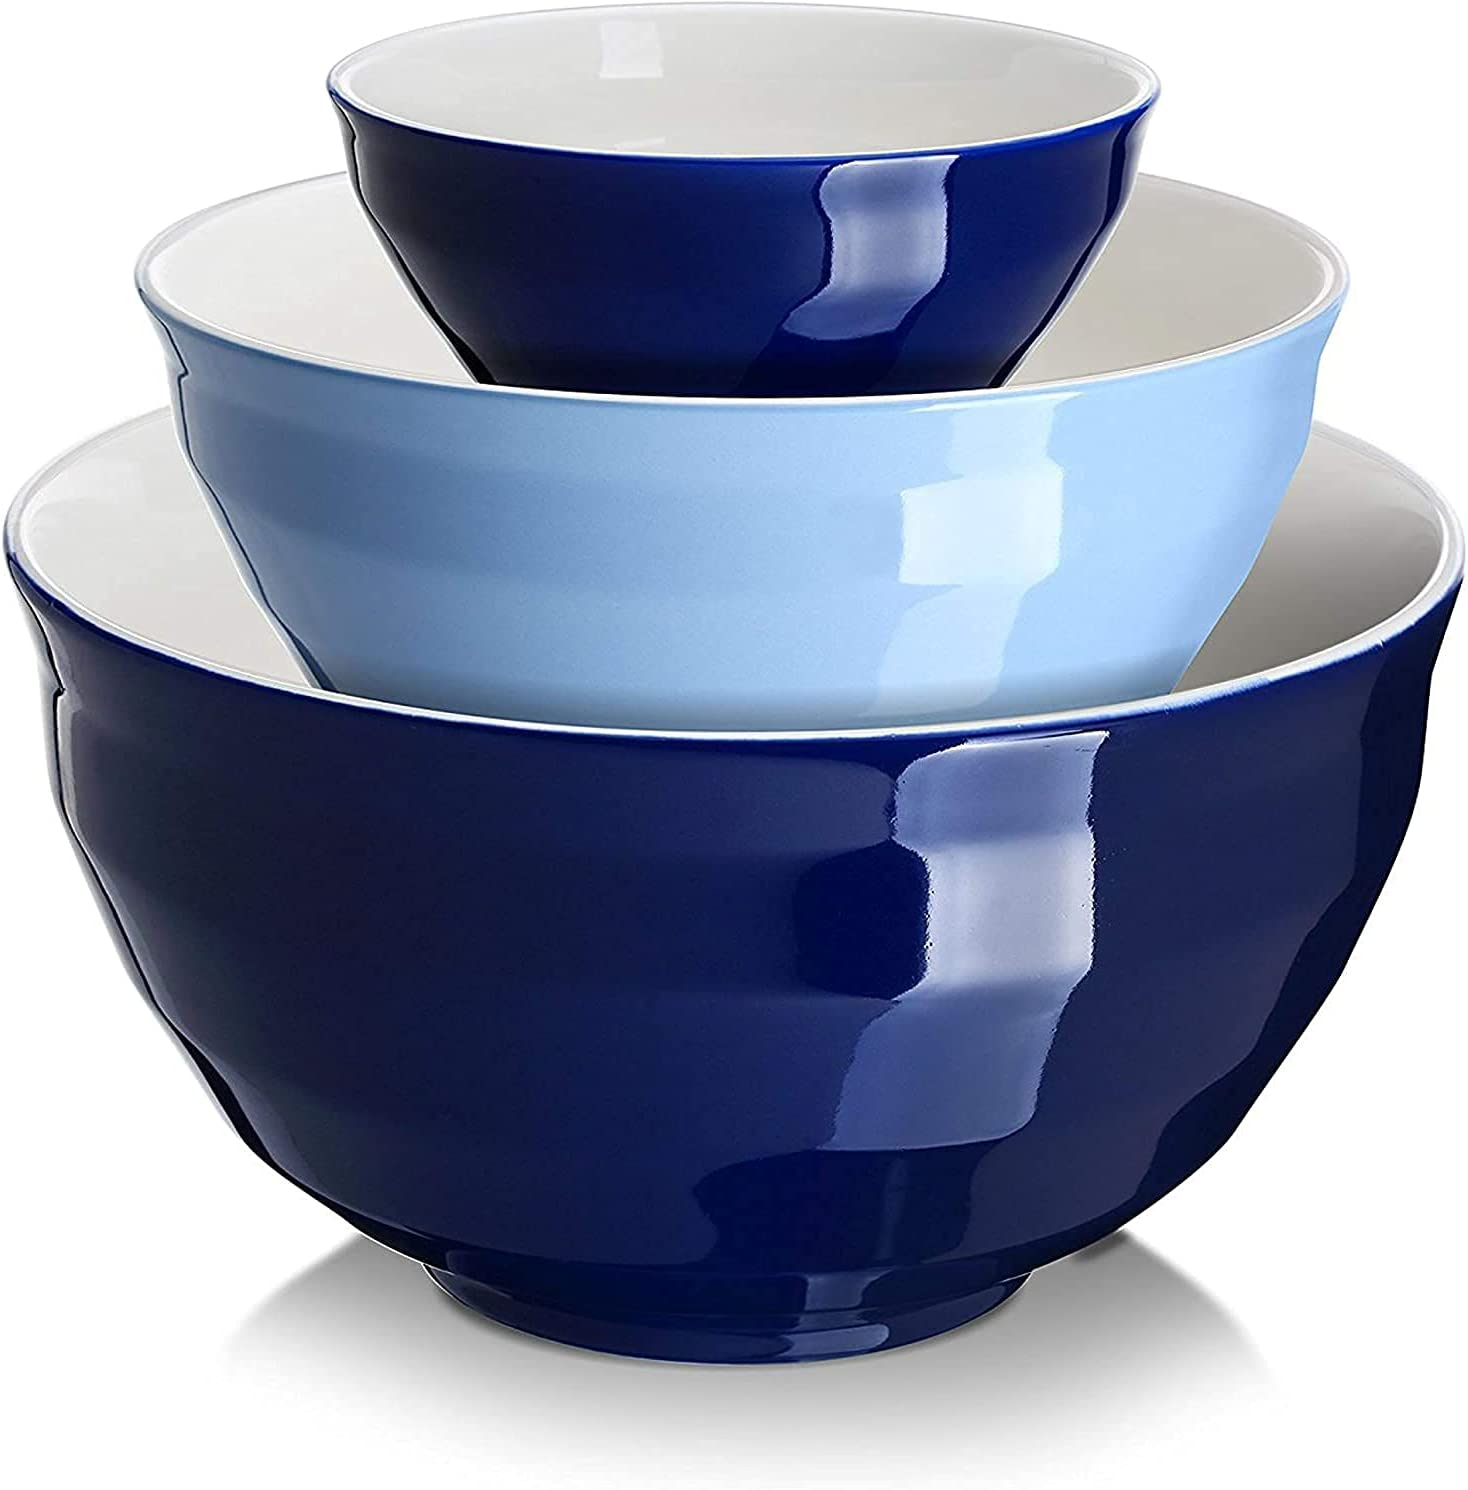 DOWAN Ceramic Mixing Bowls for Kitchen Max 74% OFF List price Large 4.25 Size 2 0.5 Qt